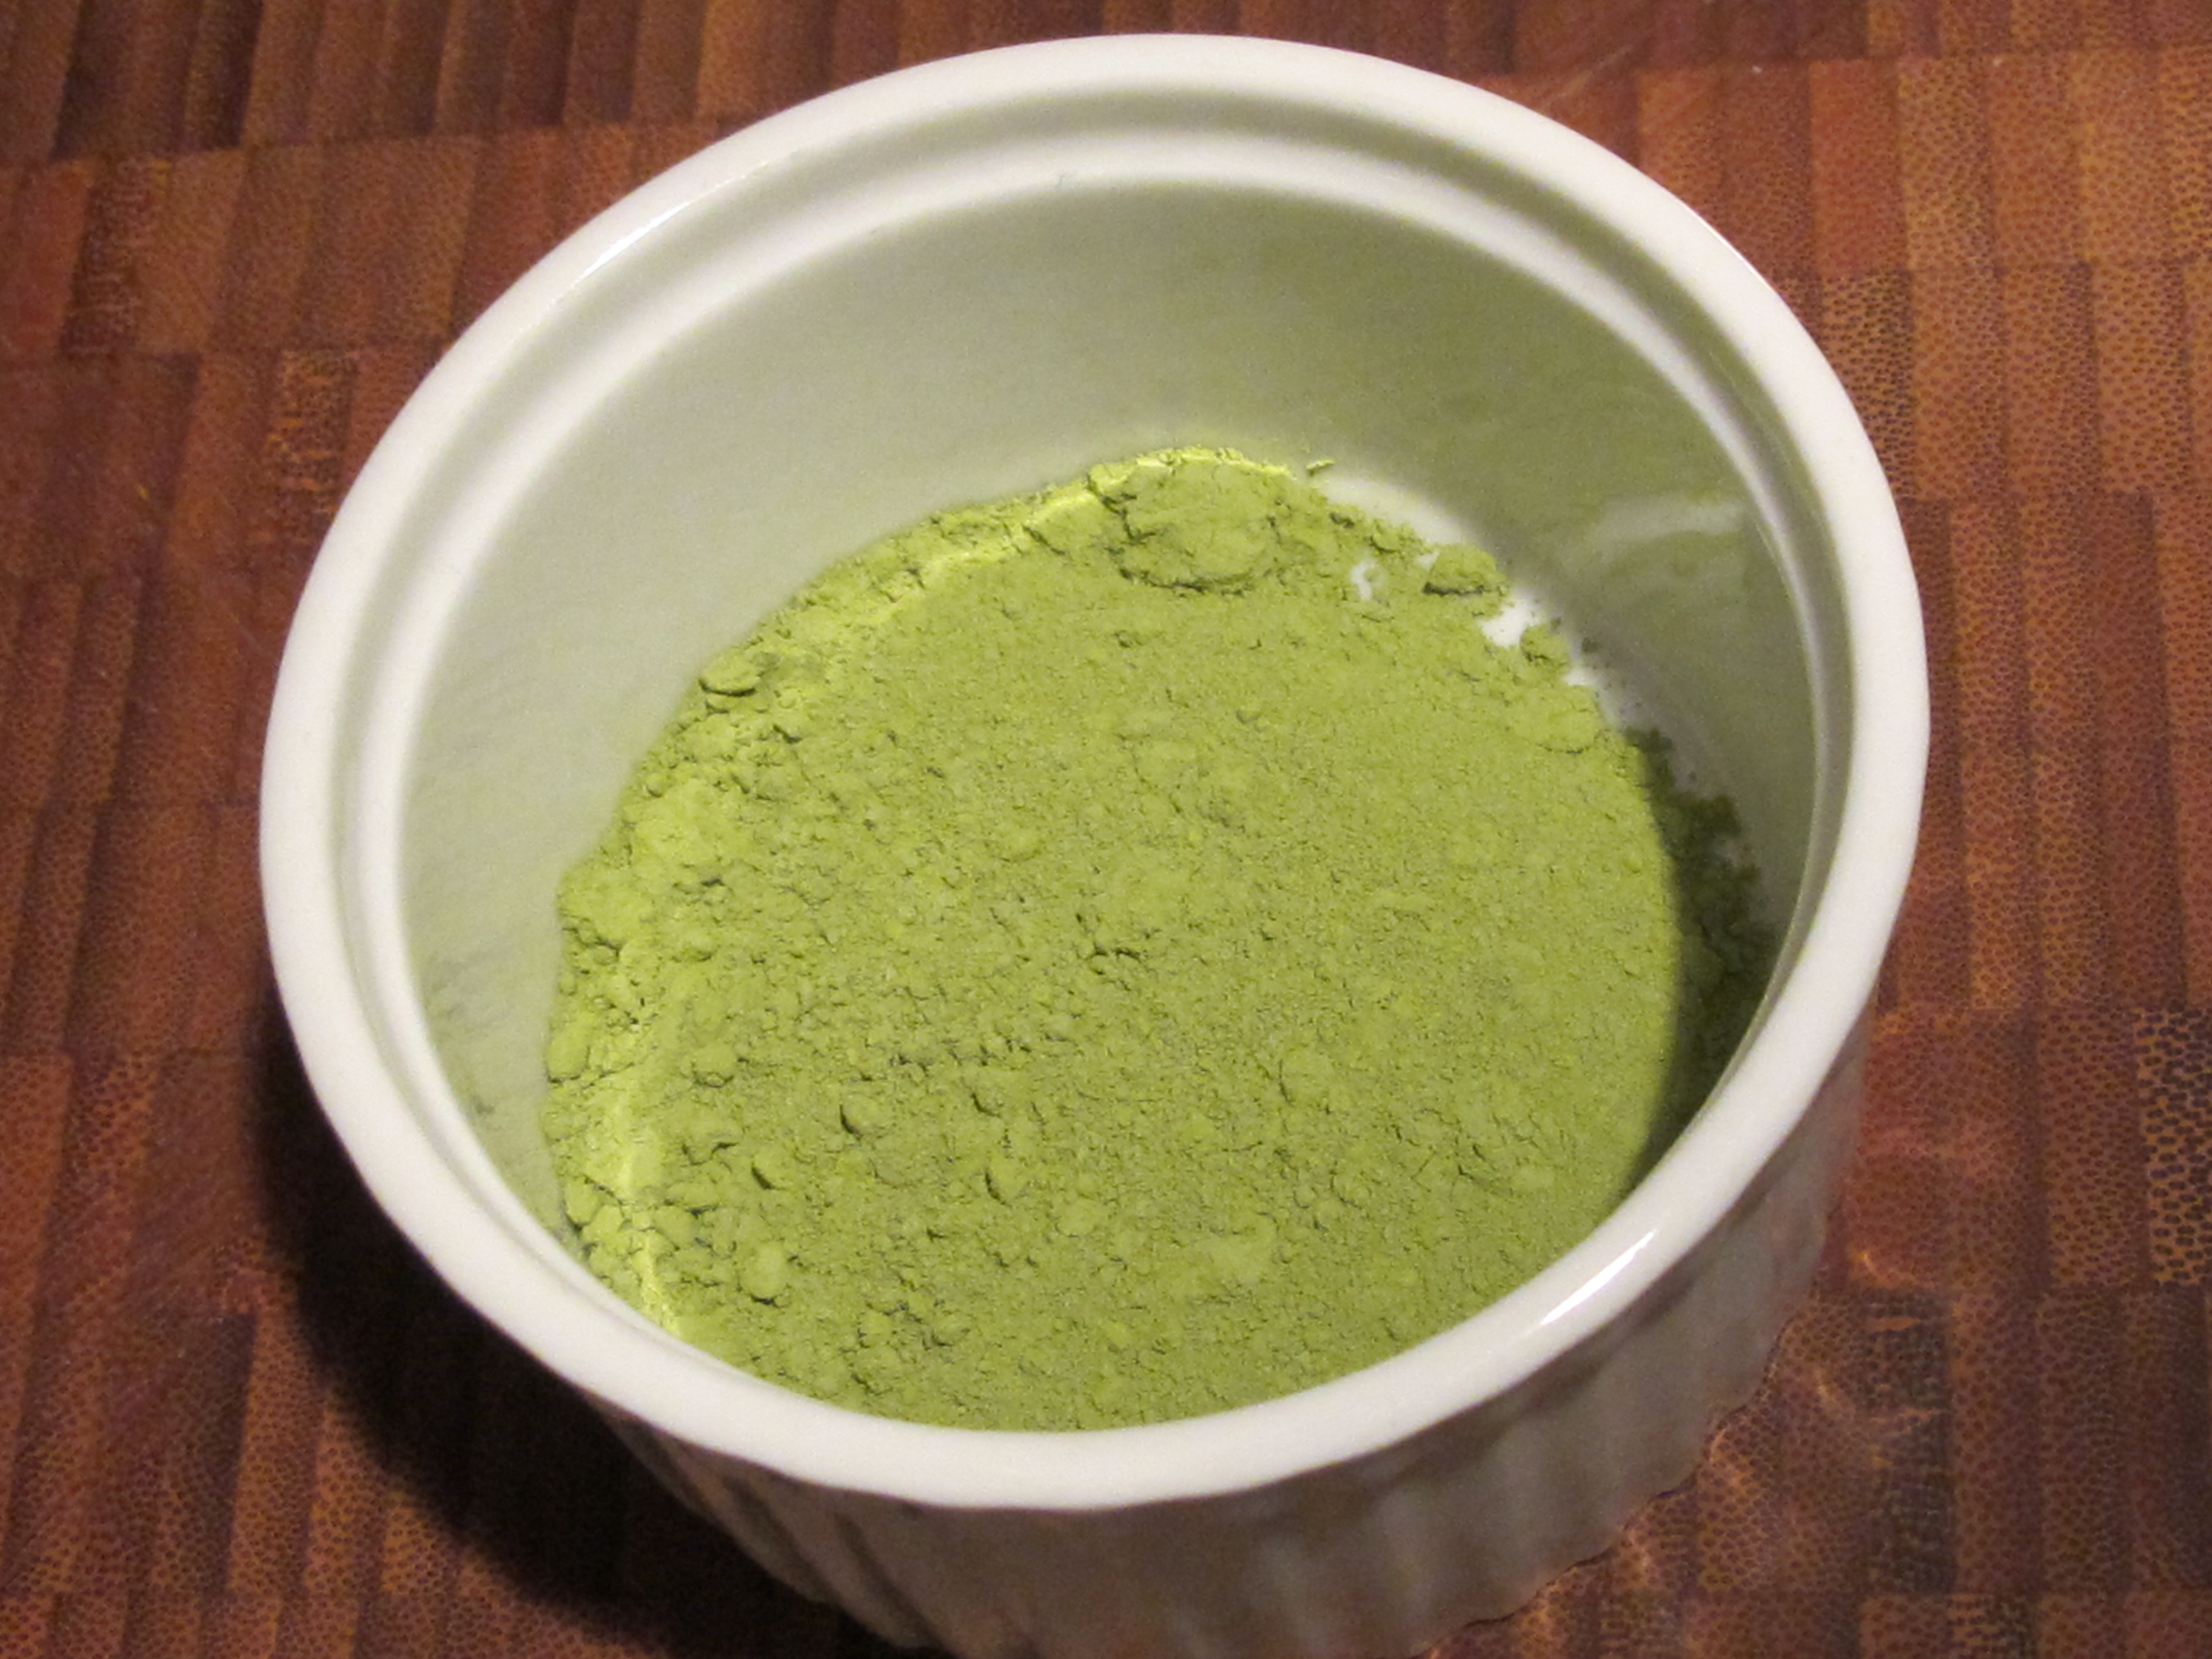 The leaves of Matcha are ground into a silky powder.